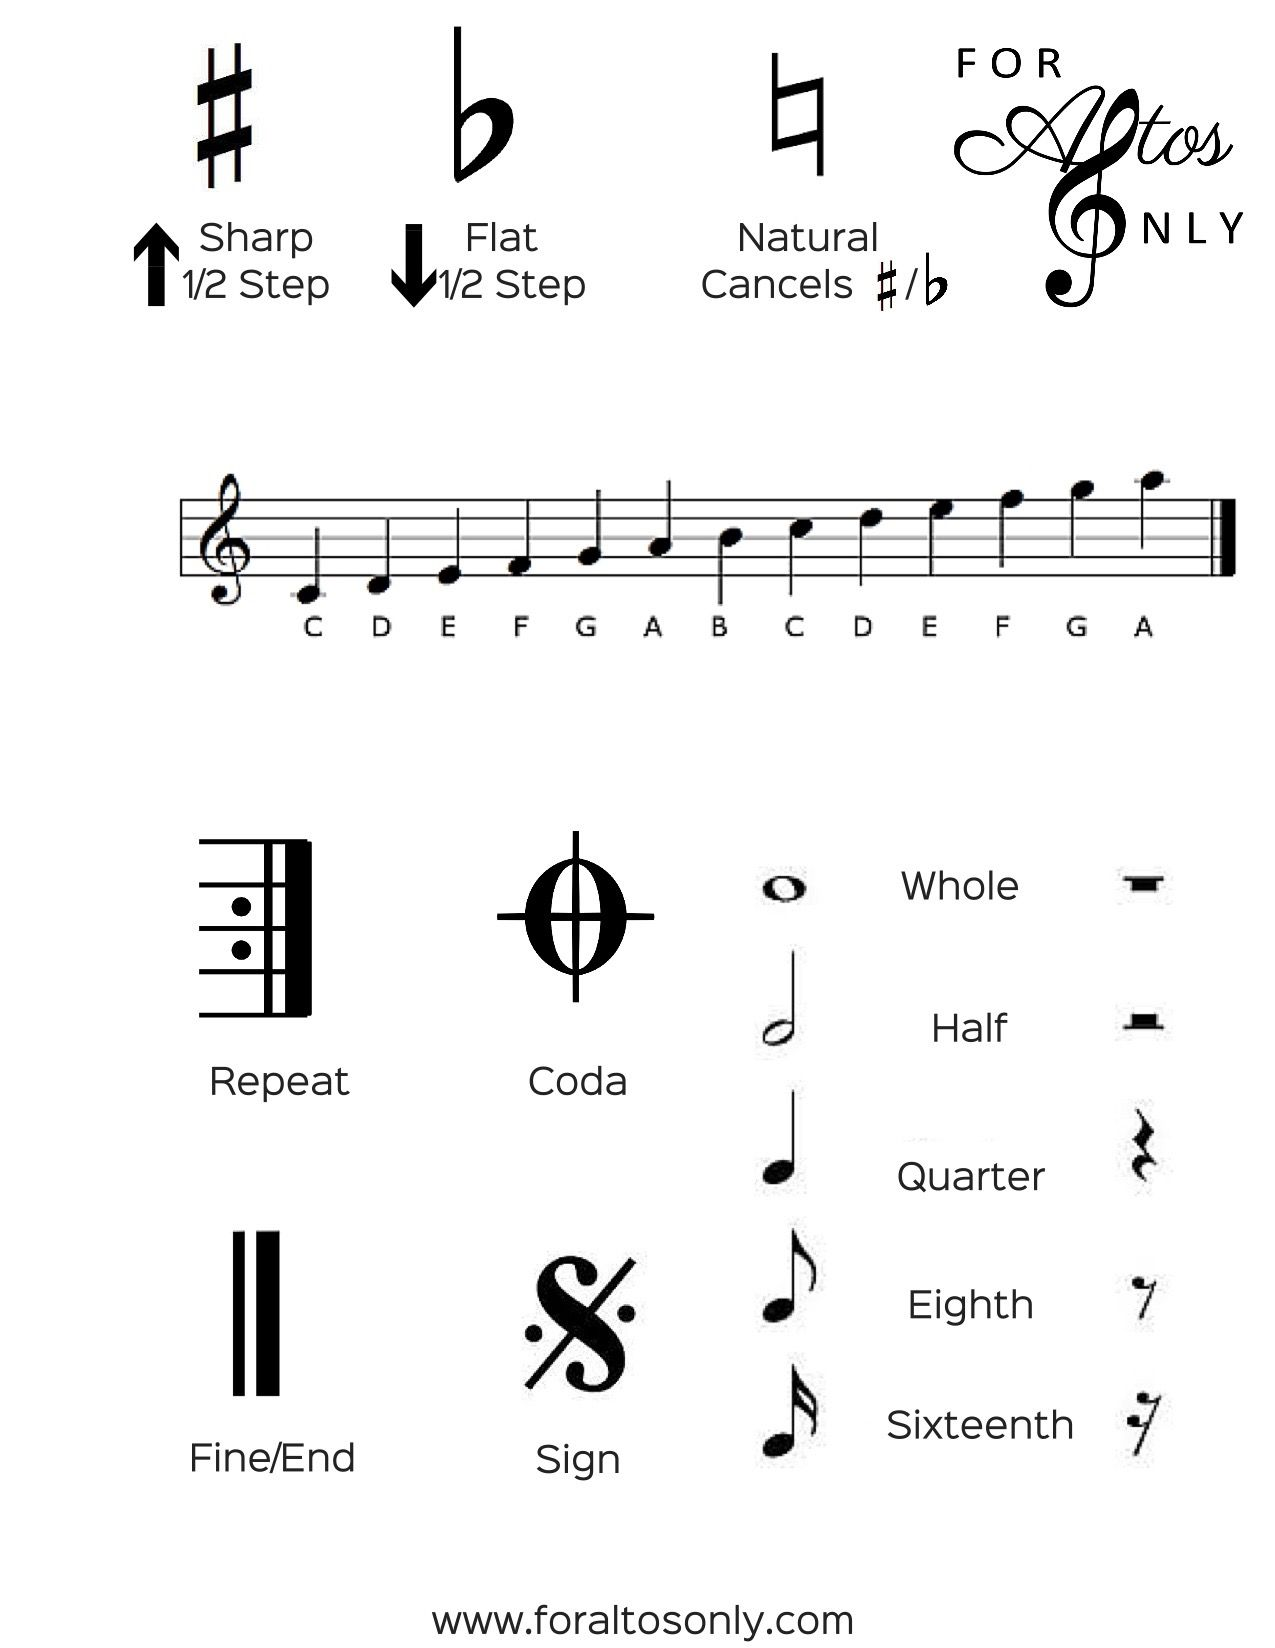 Worksheets Choir Worksheets music reference sheet of symbols and notes for altos singing in a choir